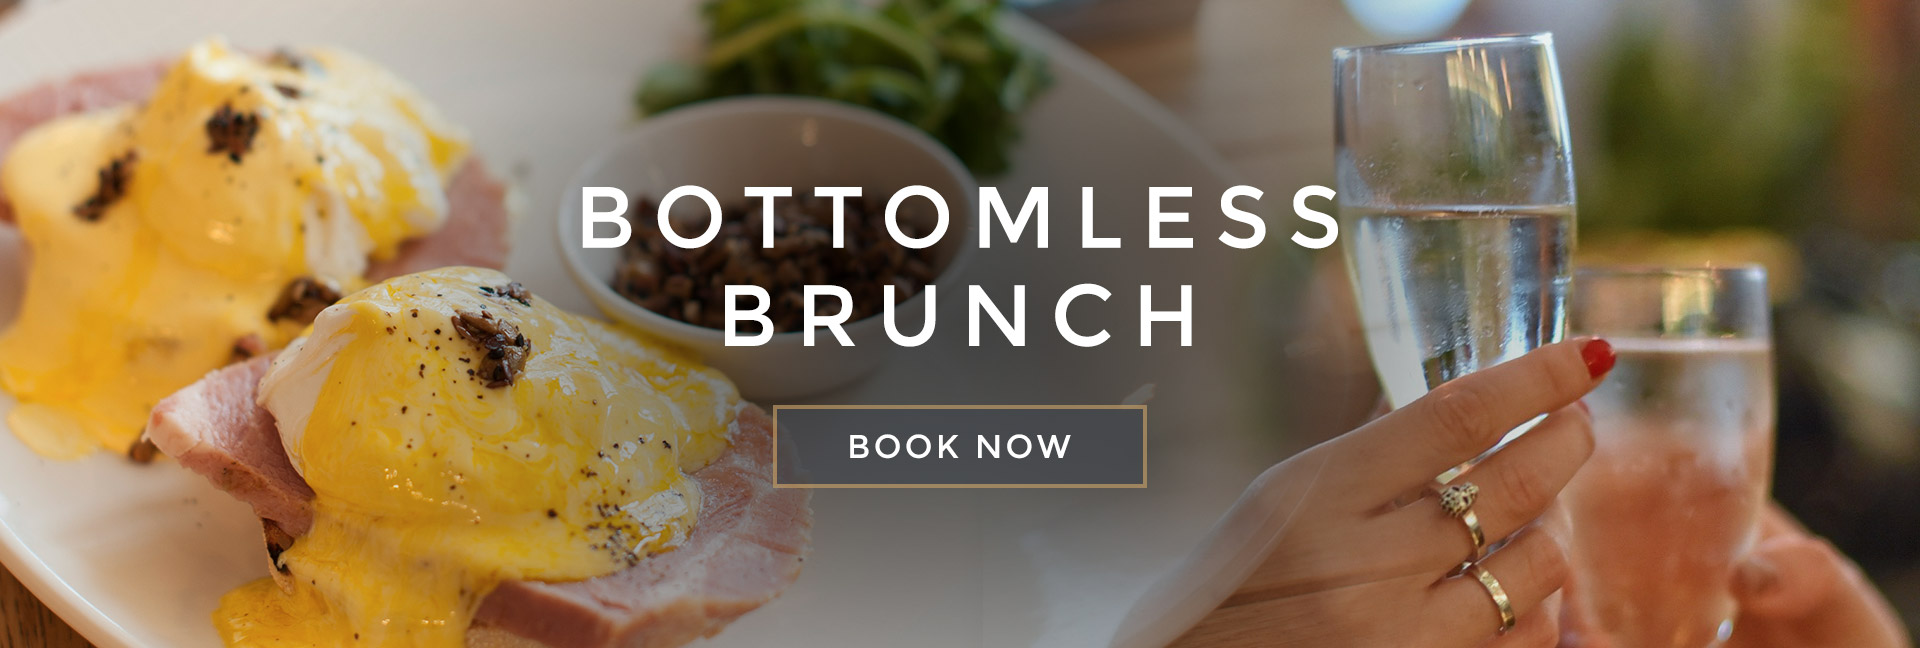 Bottomless Brunch at All Bar One Cambridge - Book now